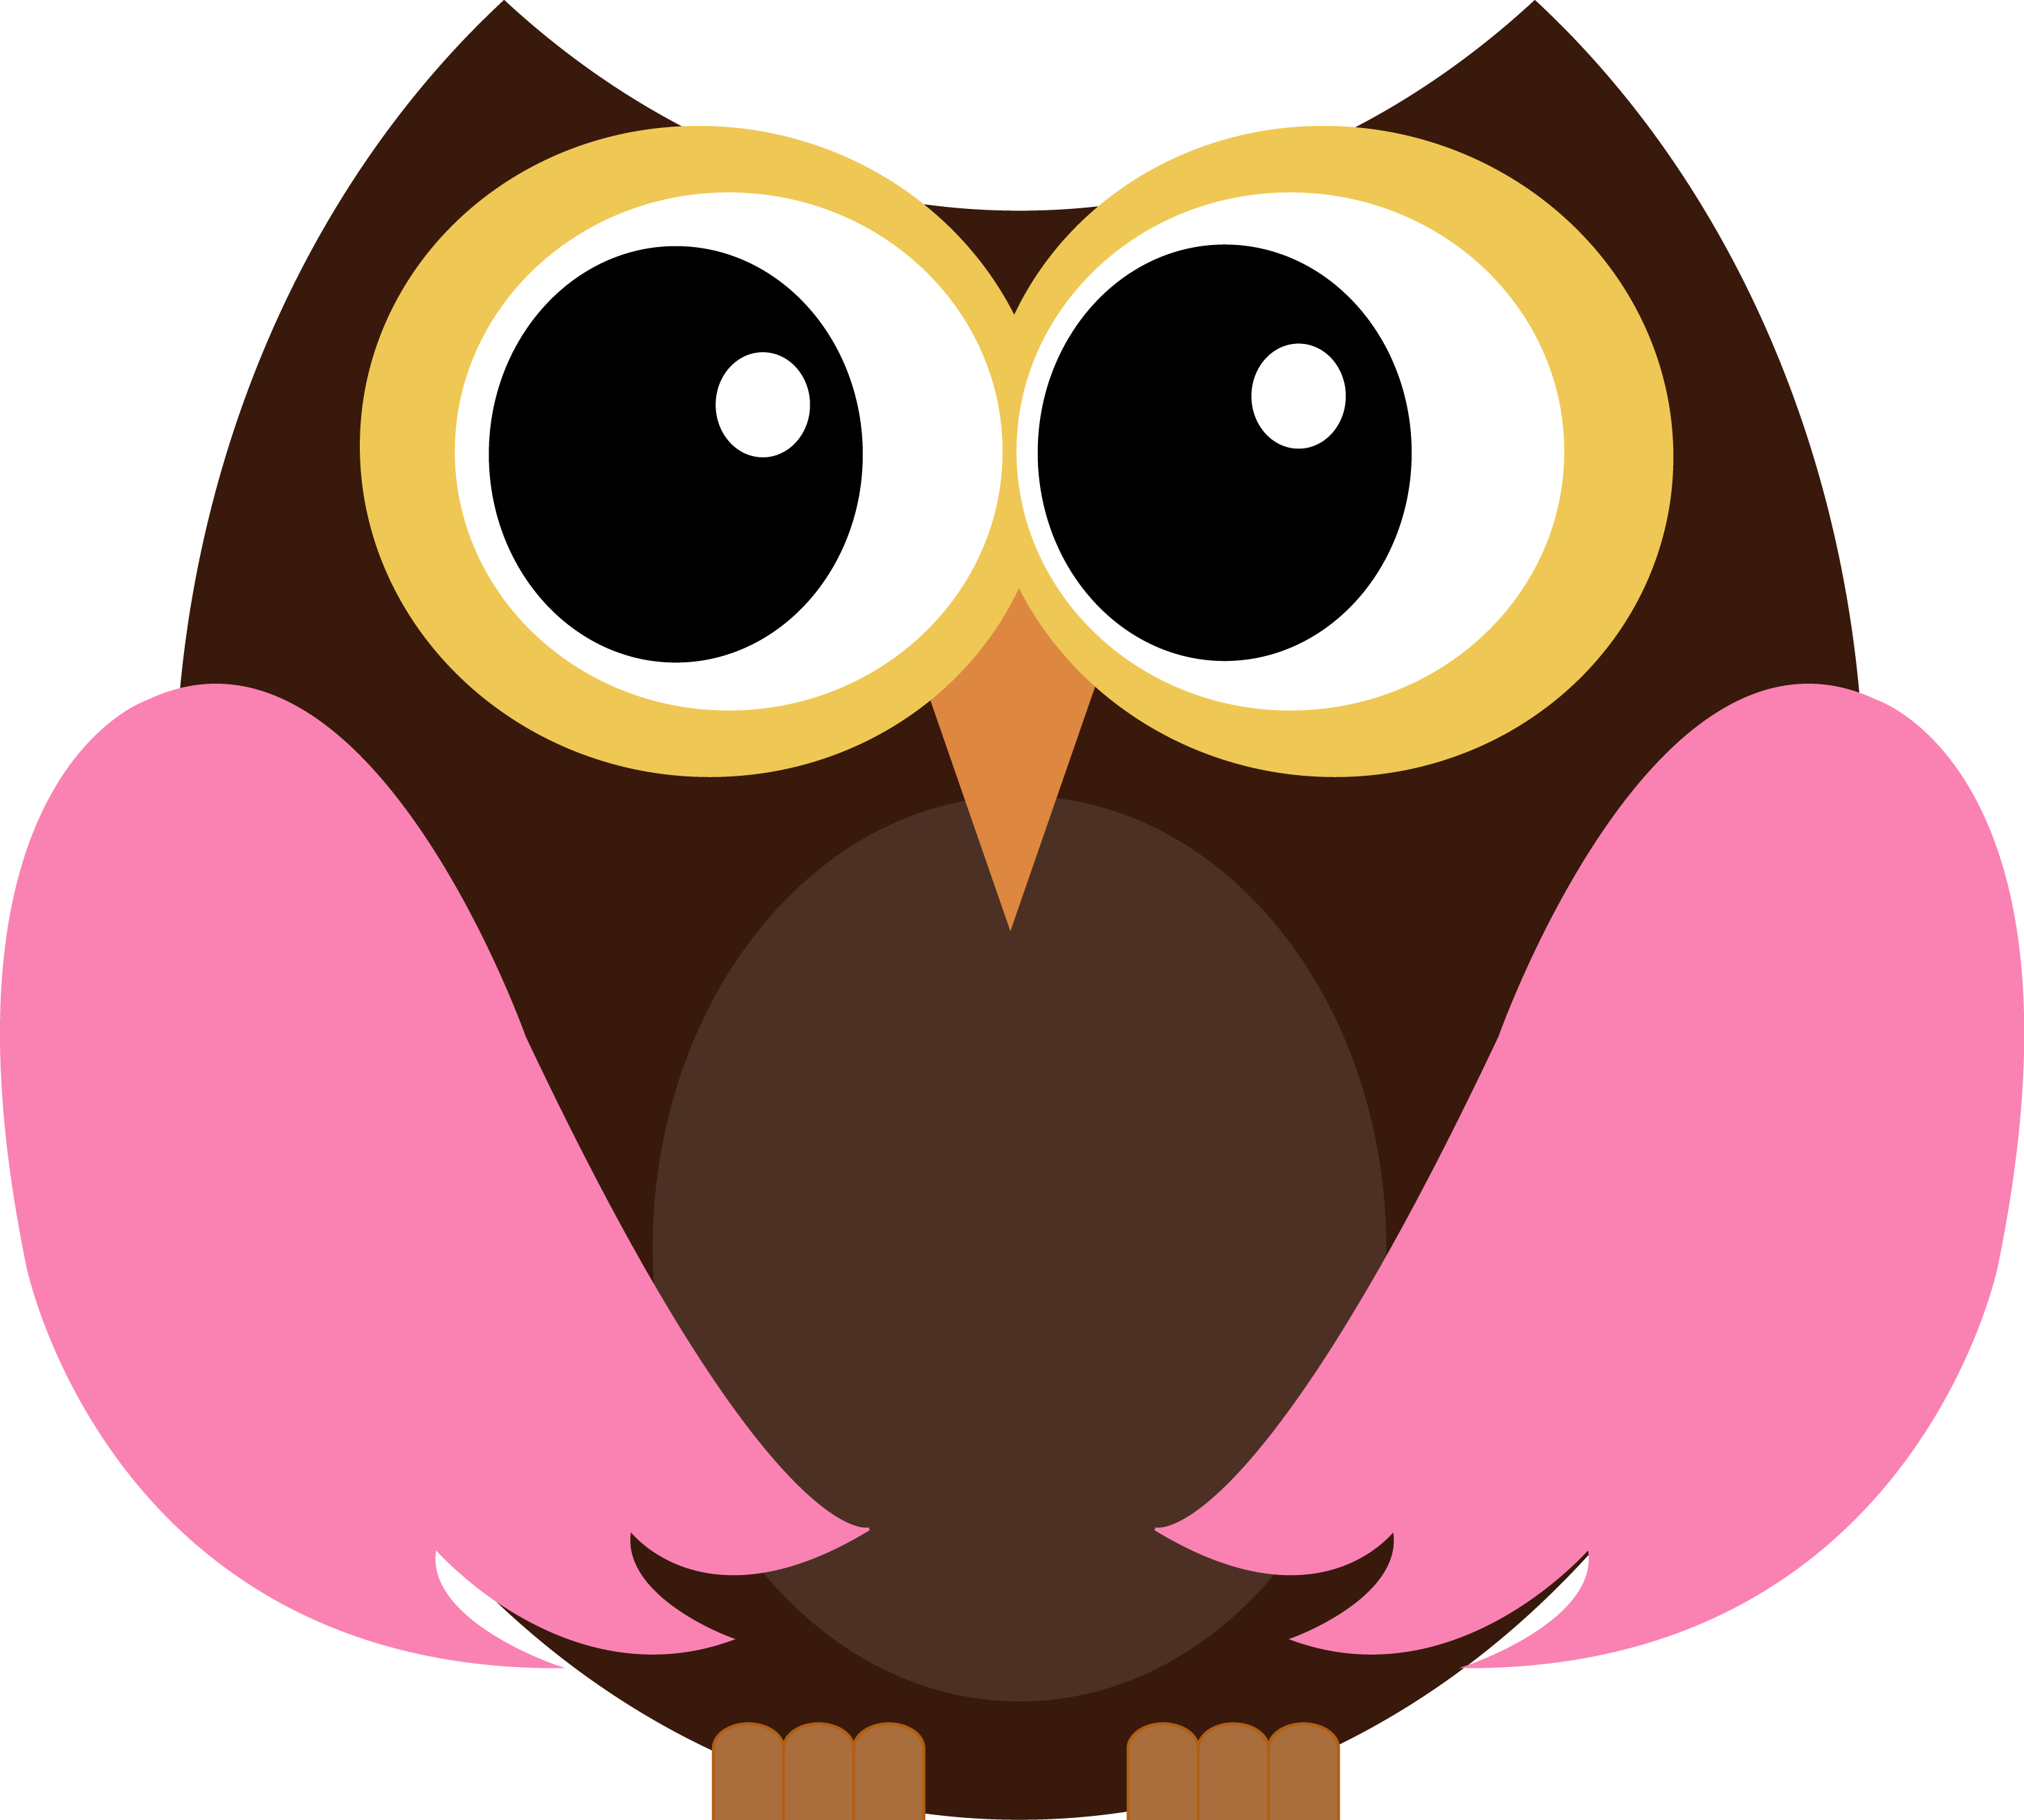 July clipart owl, July owl Transparent FREE for download on.